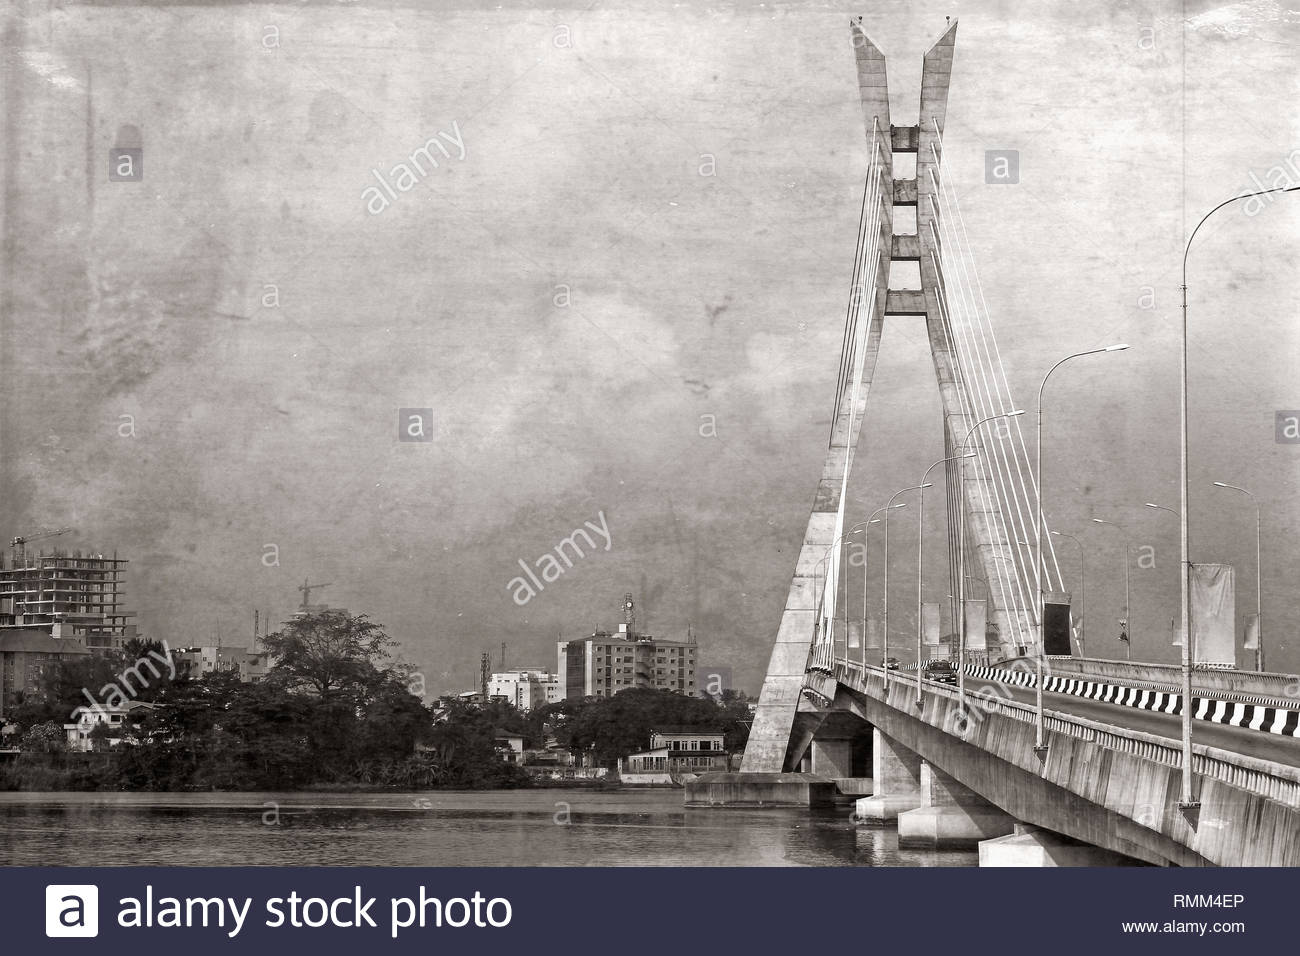 Lekki, Lagos, Nigeria; Lekki bridge shown in black and white, with grunge look - old retro photo effect - Stock Image